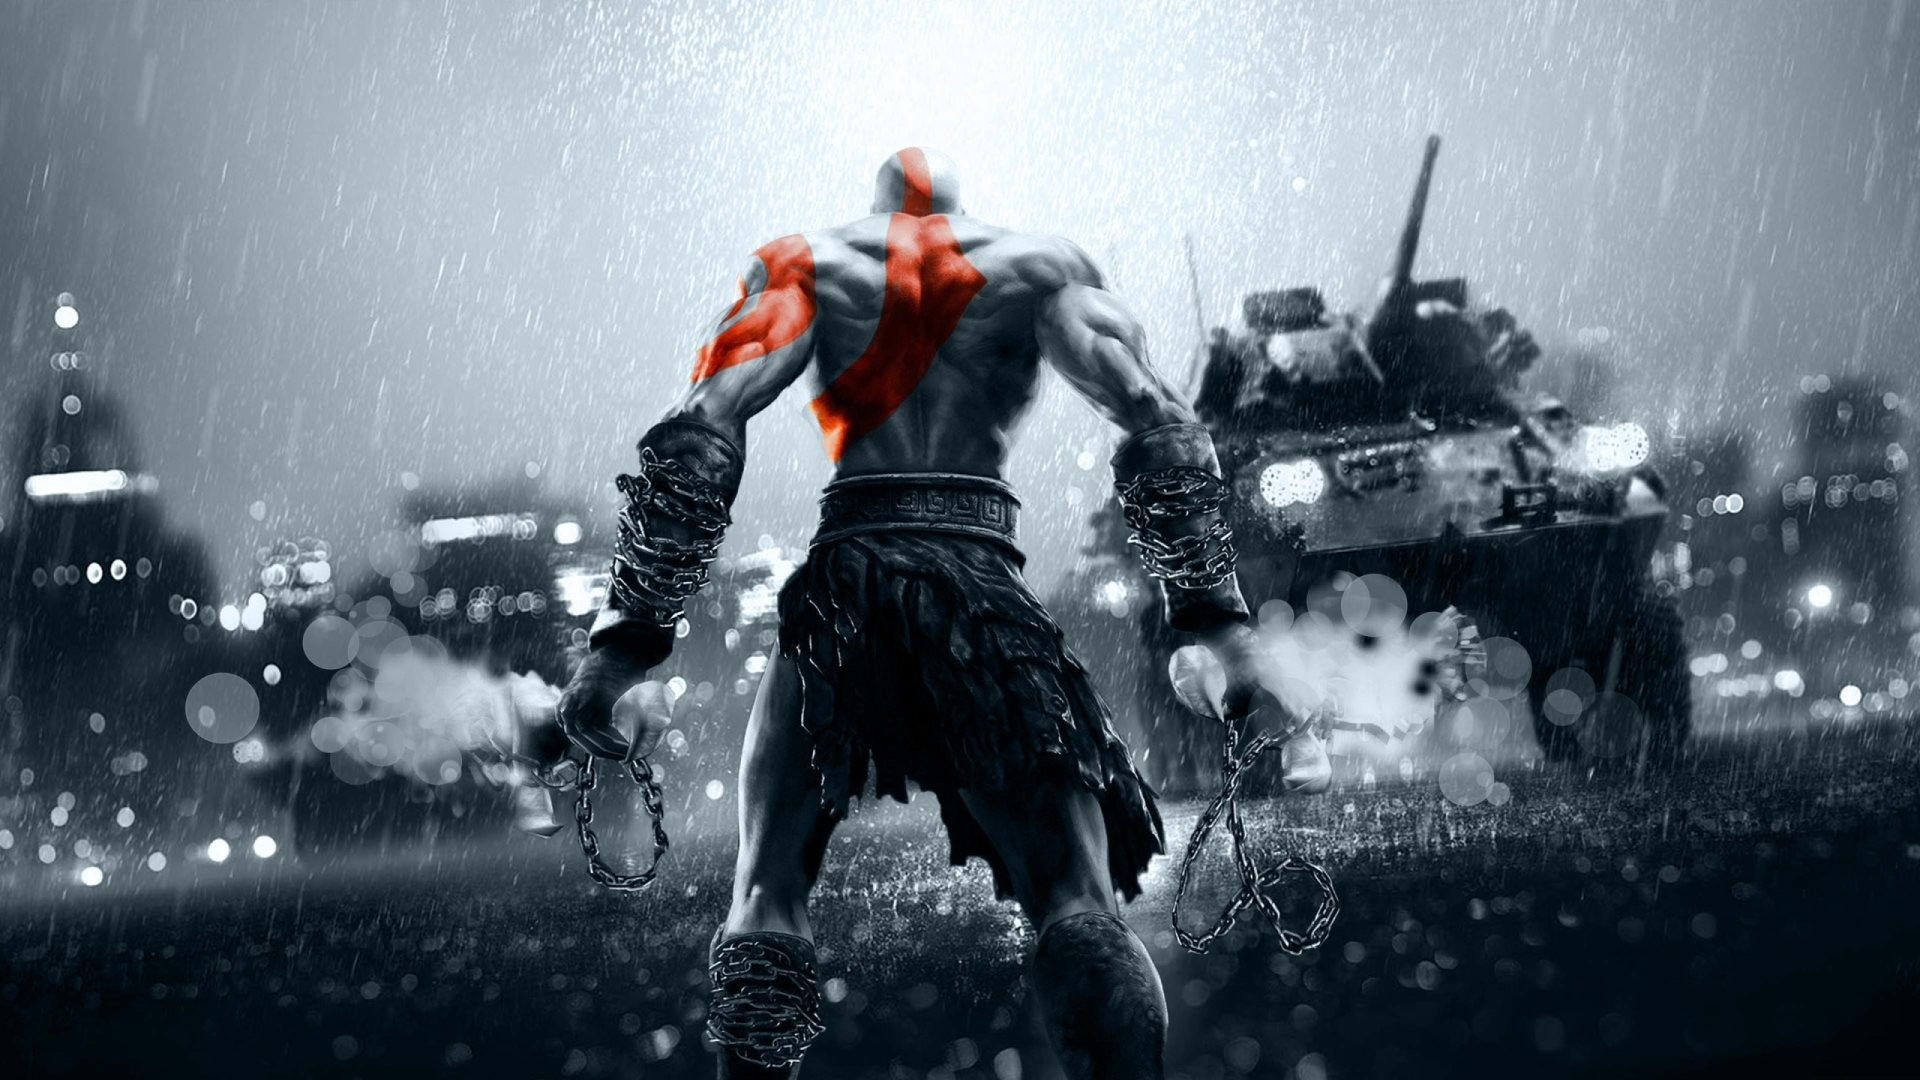 1920x1080 Epic wallpaper with God Of War game listed below in 4K, HD and wide sizes ·  Download this God Of War wallpaper optimized for apply in phones, ...